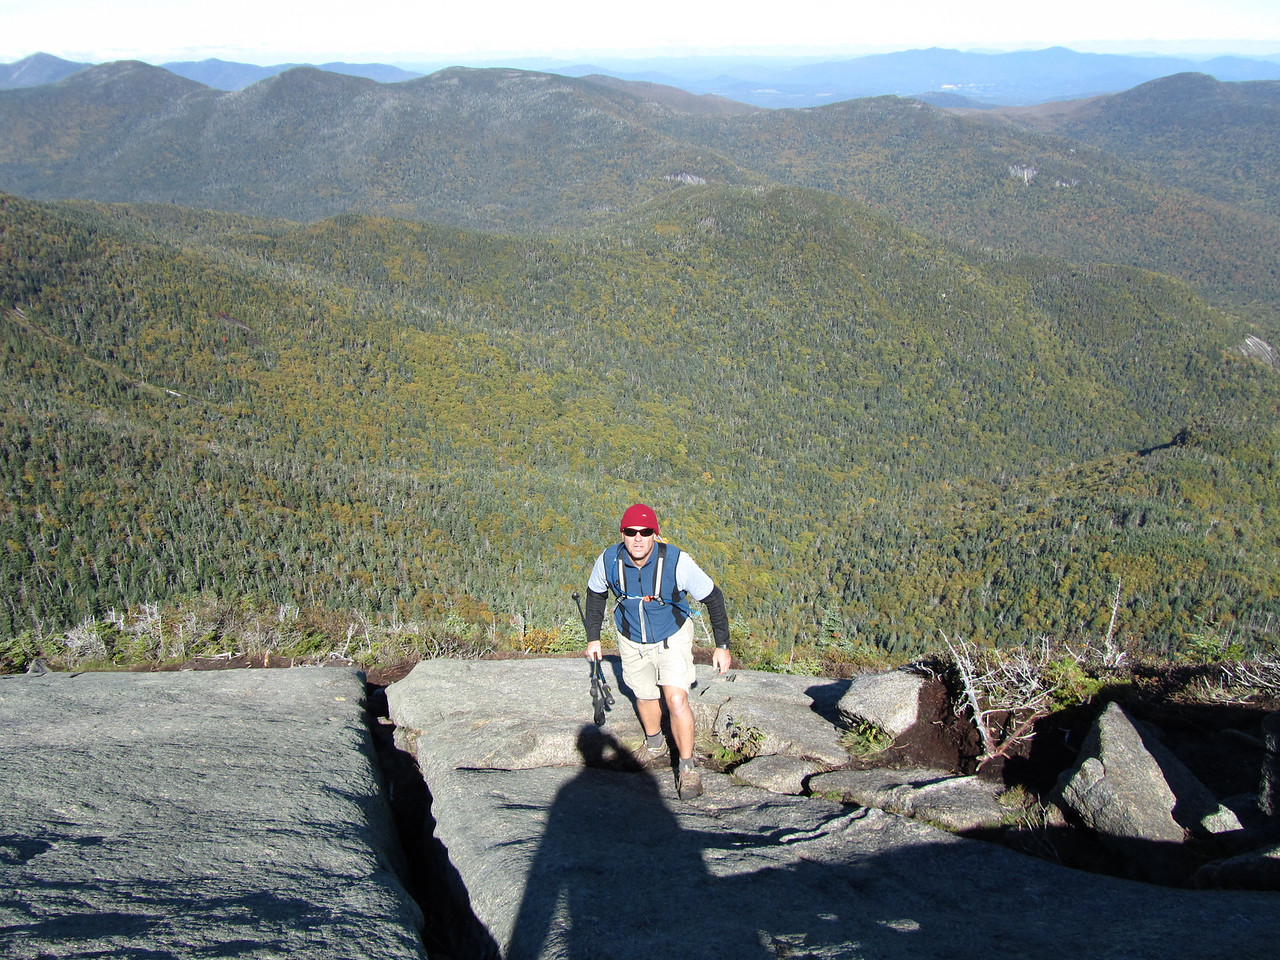 Amazing views. gothics is one of the best ranking views in the ADK.